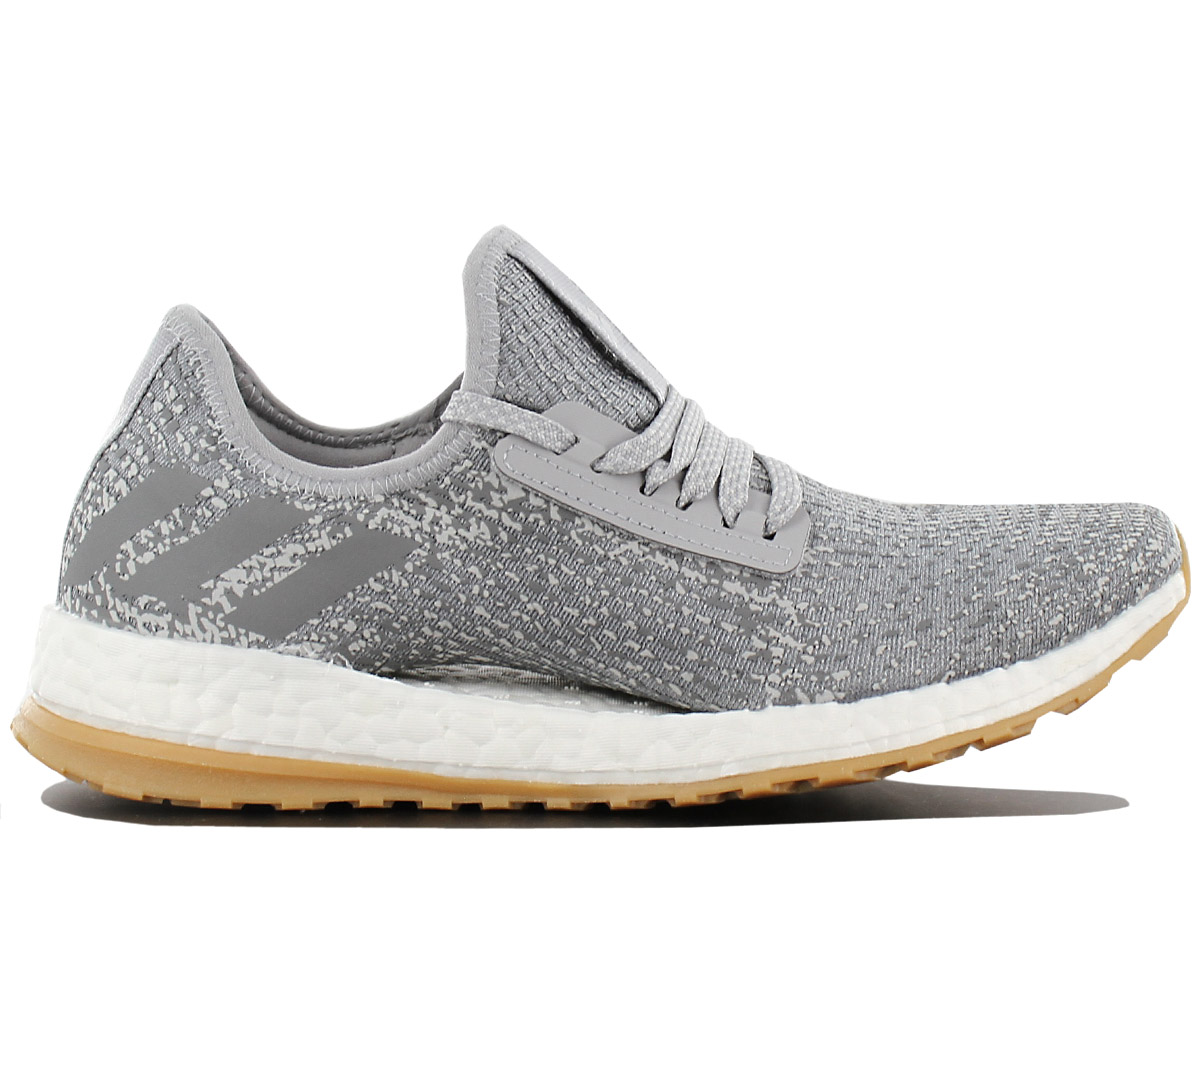 new concept 70f2a b8f71 Adidas Pure Boost x Atr All-Terrain Ladies Running Shoes Bb1728 Grey ...